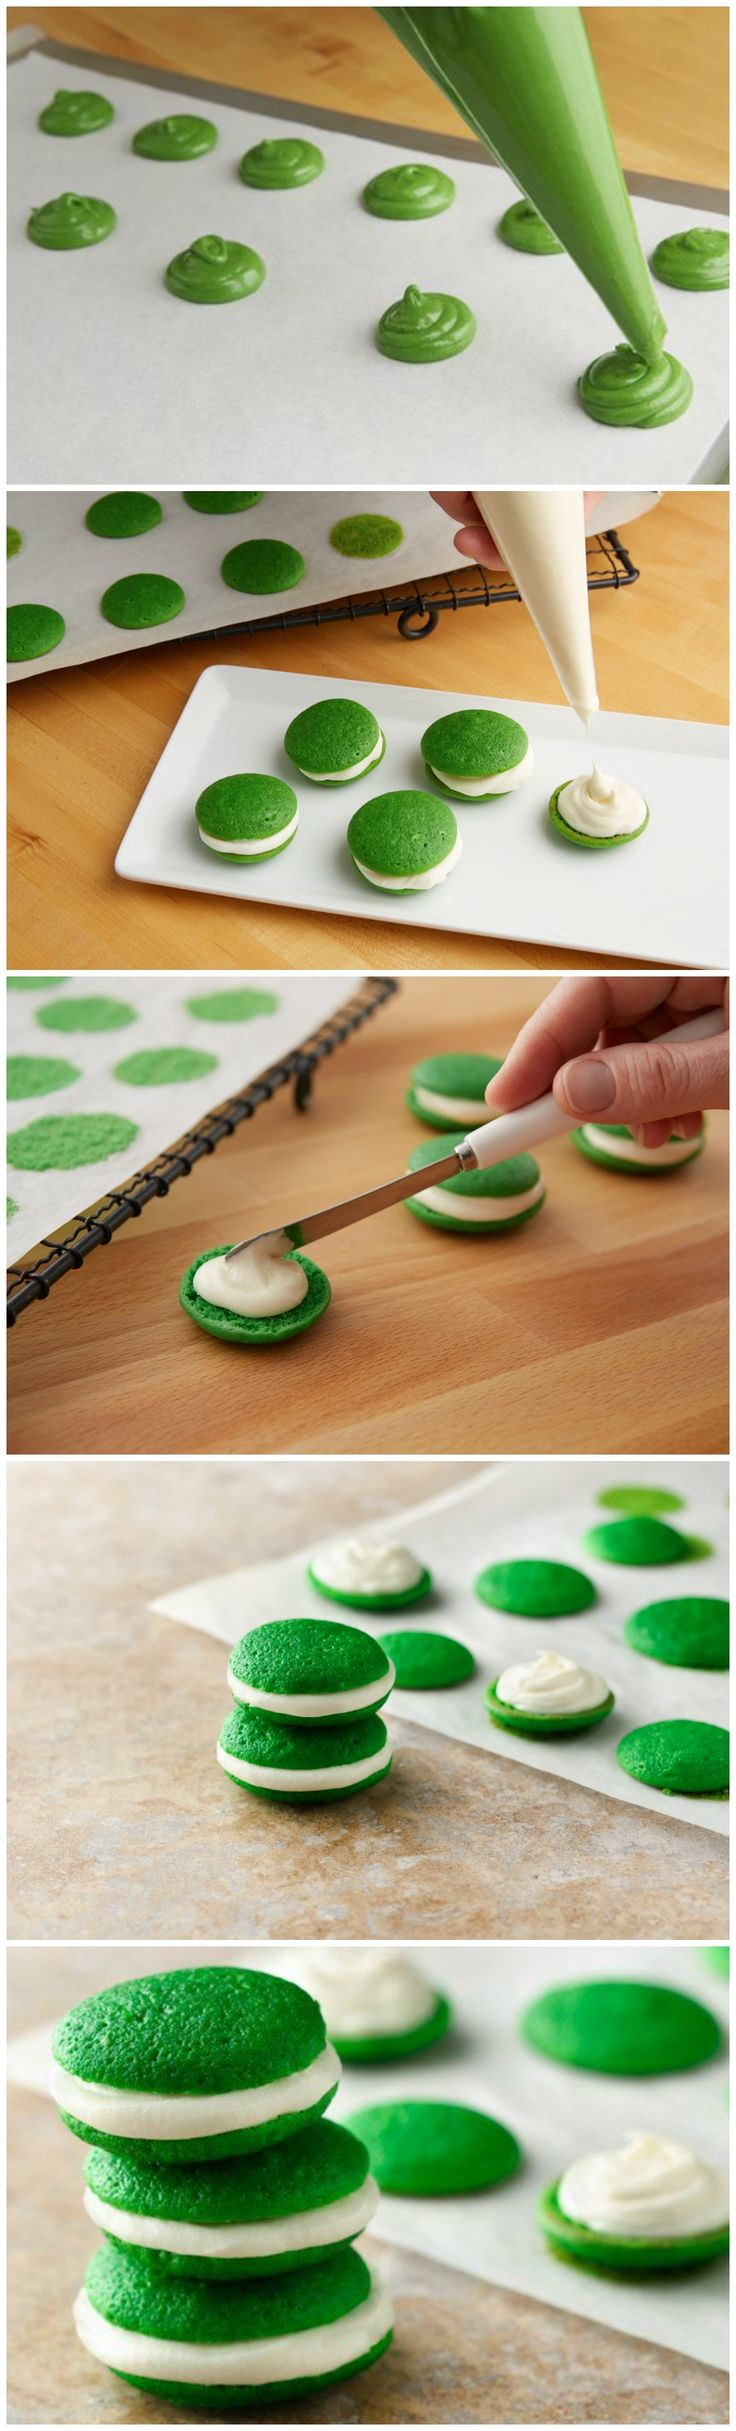 These look mysteriously easy to make...Mini Whoopie Pies!!! Pink would be so cute for Valentine's Day!